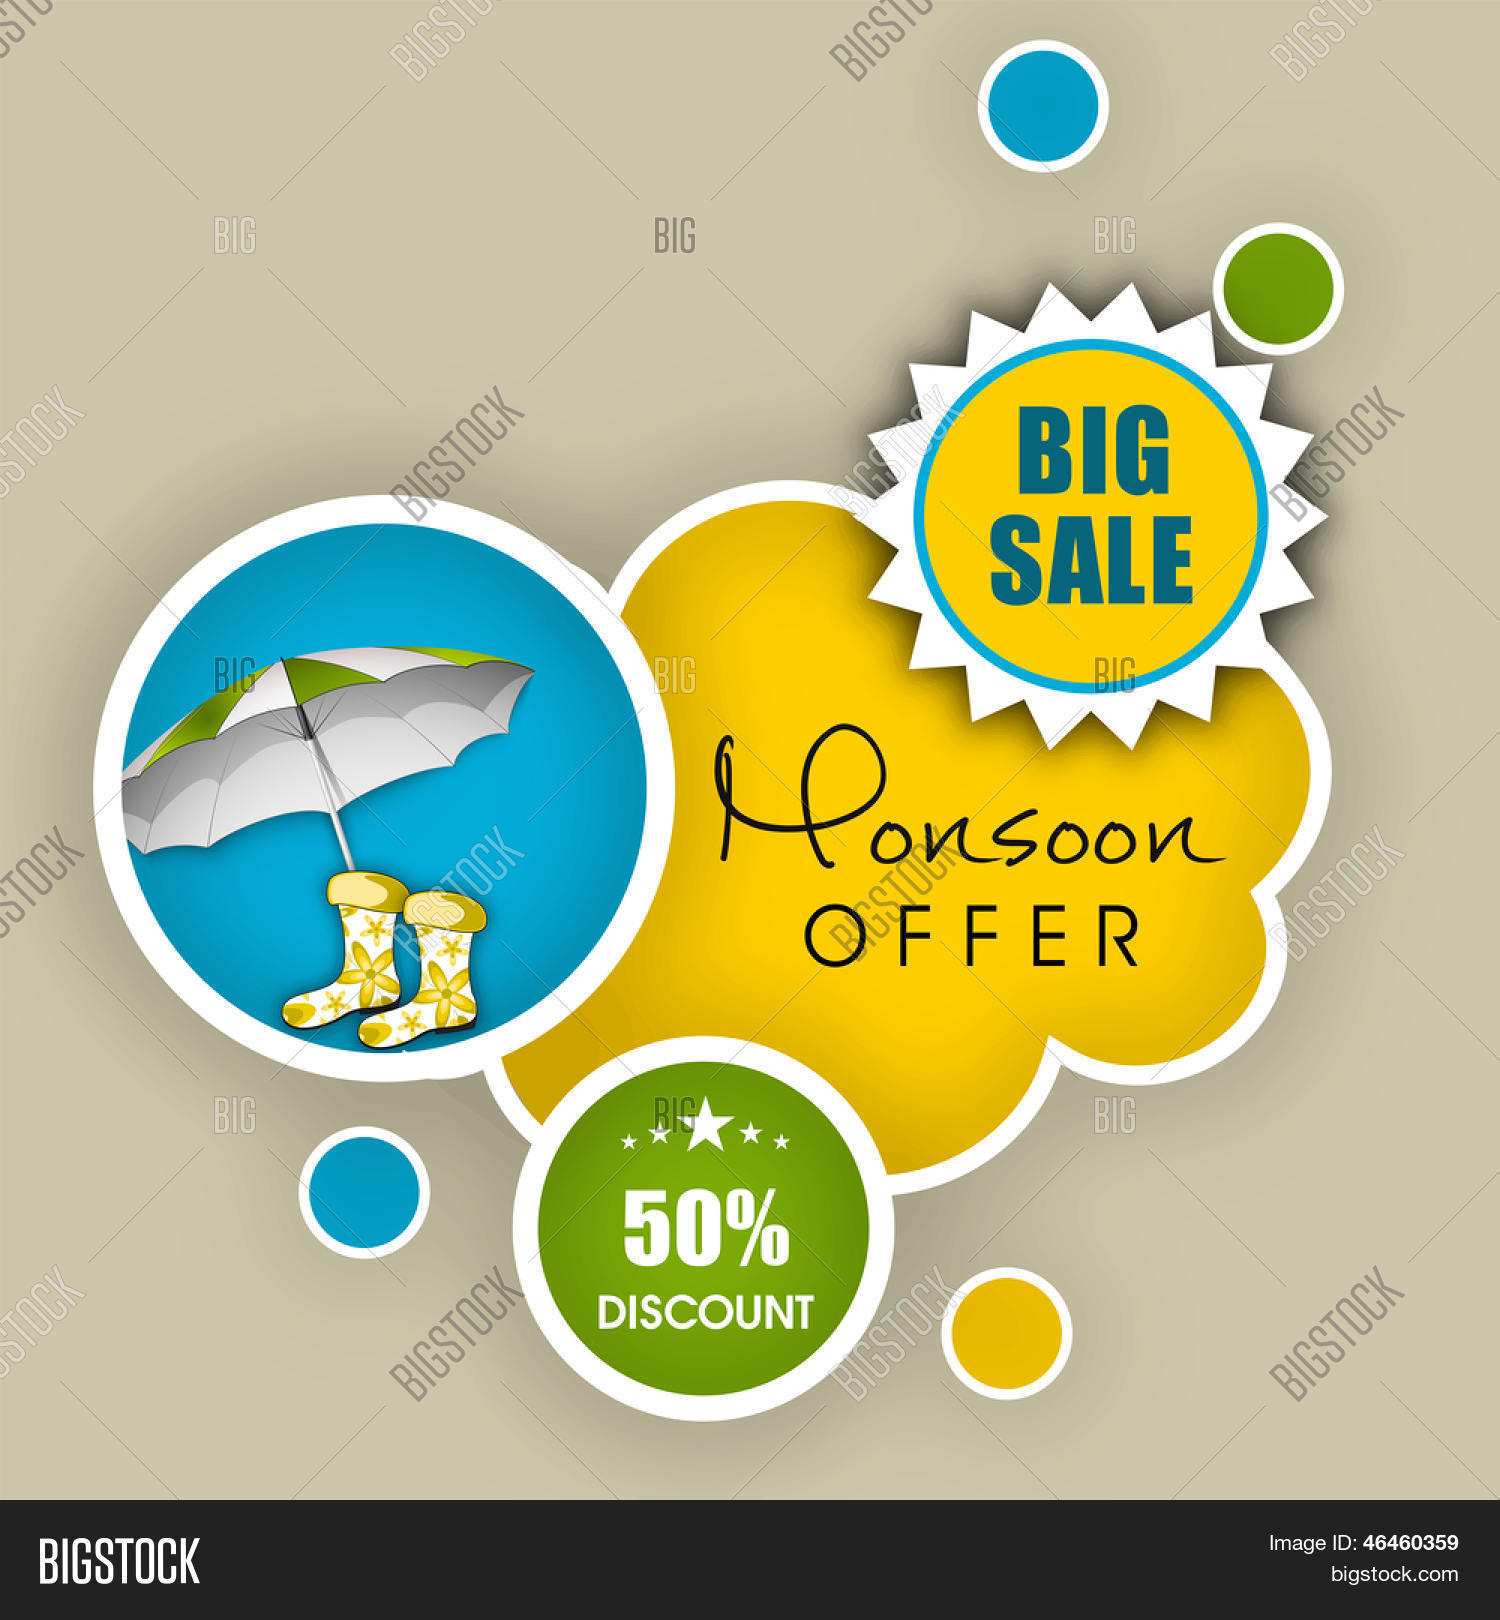 monsoon offer and banner flyer or poster stock vector monsoon offer and banner flyer or poster